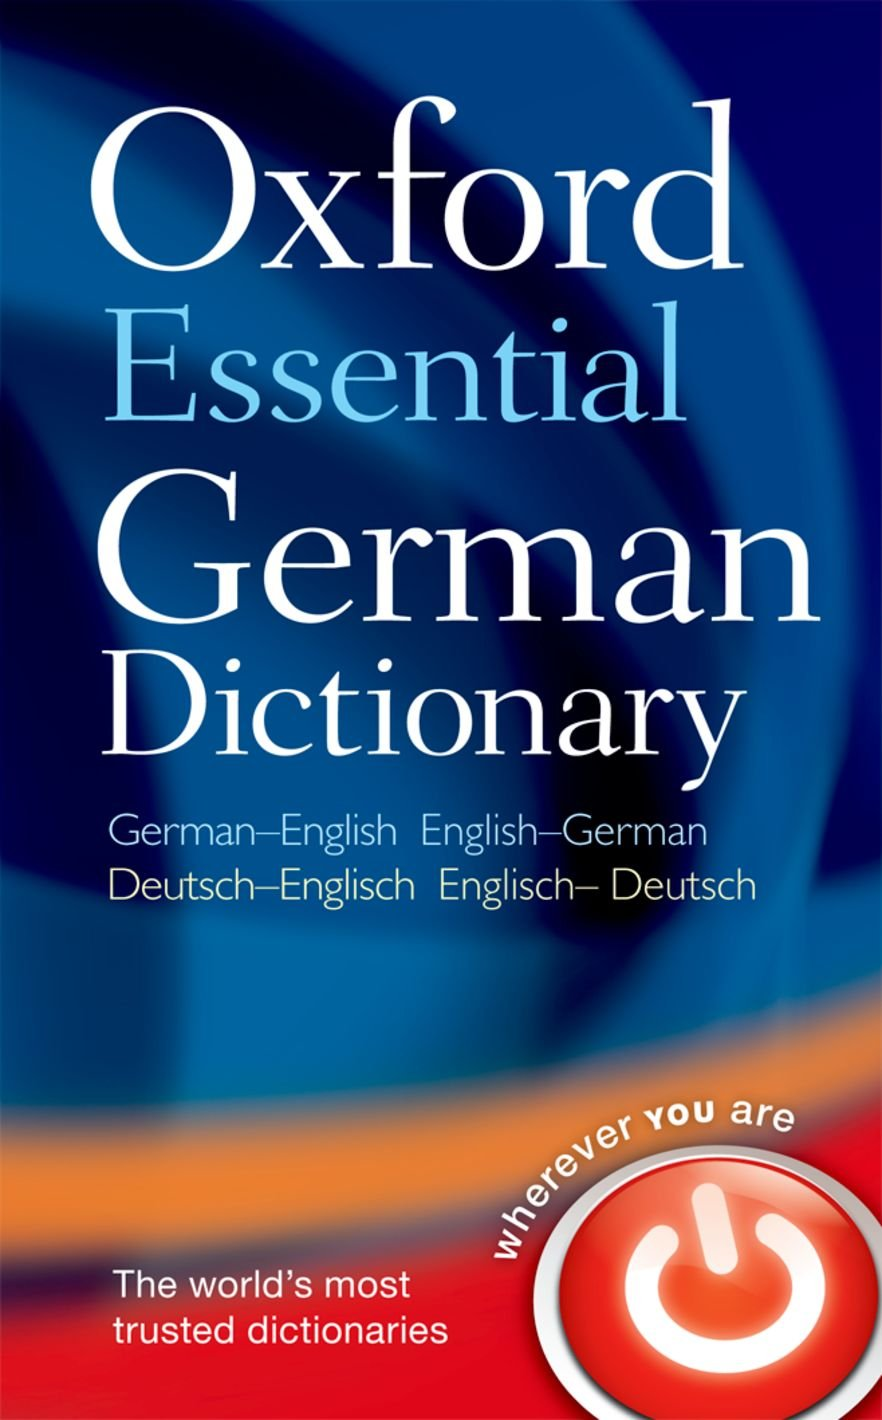 Oxford Essential German Dictionary Over 20 20 words, phrases ...